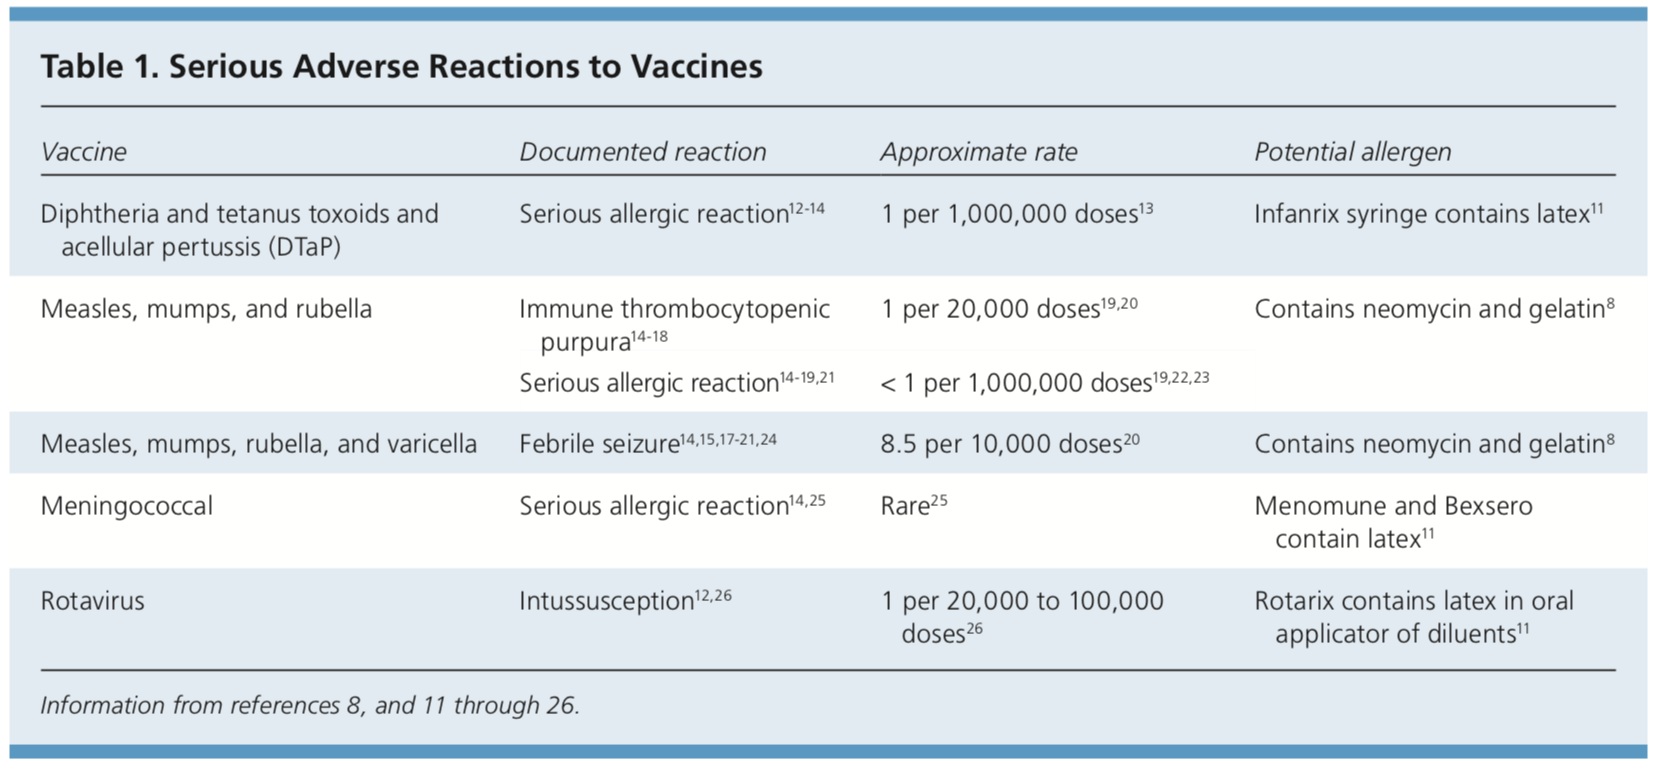 Serious adverse reactions to vaccines